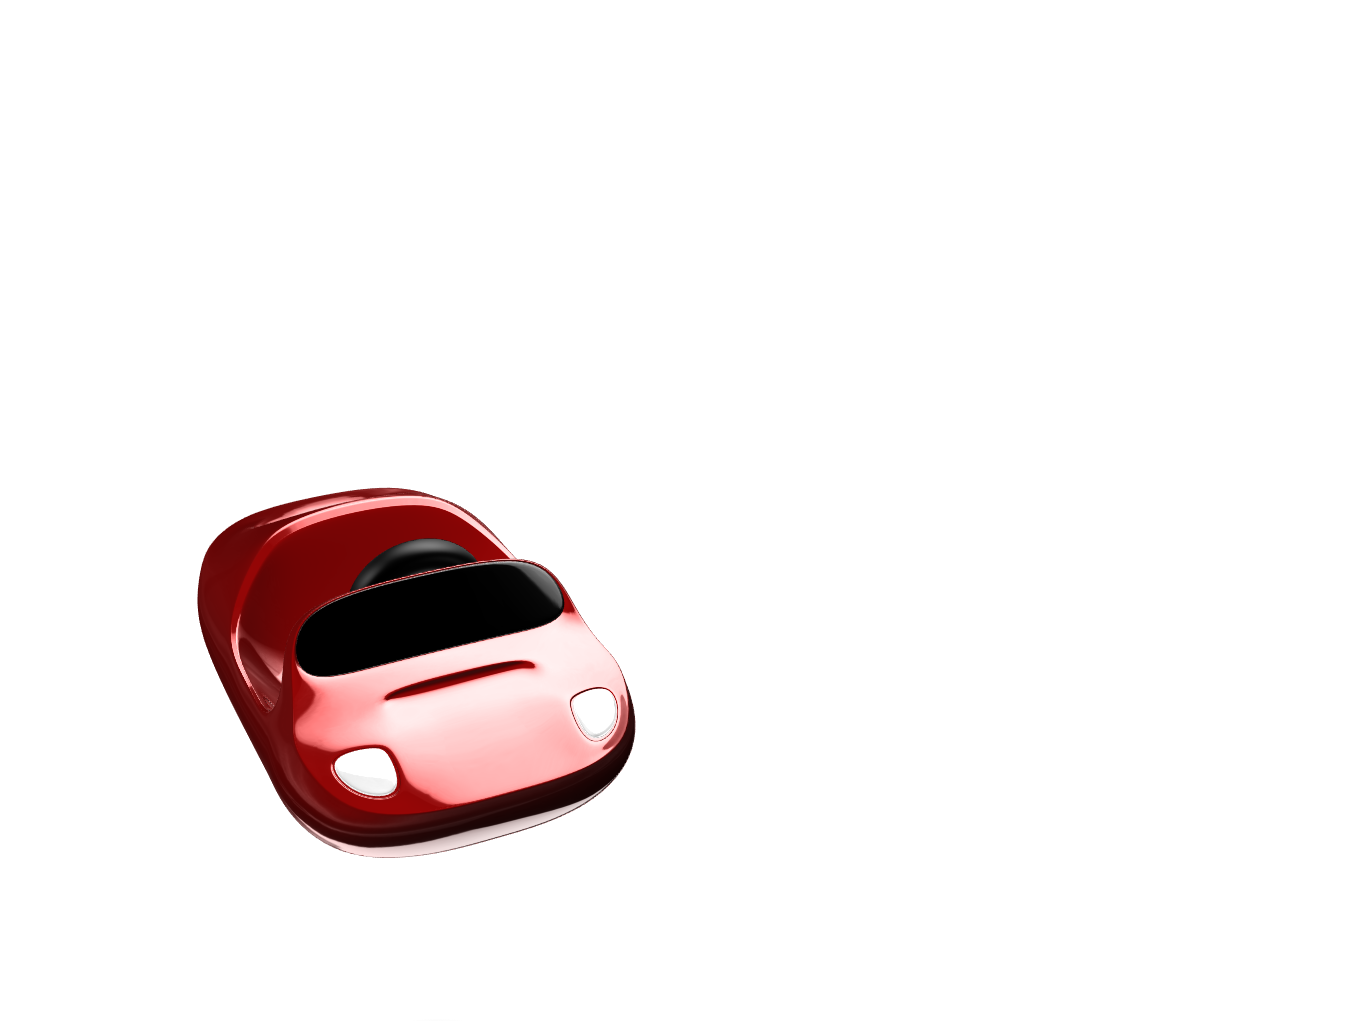 Toy: Starman riding a Tesla Roadster - 3D design by Chris Moulton Mar 1, 2018